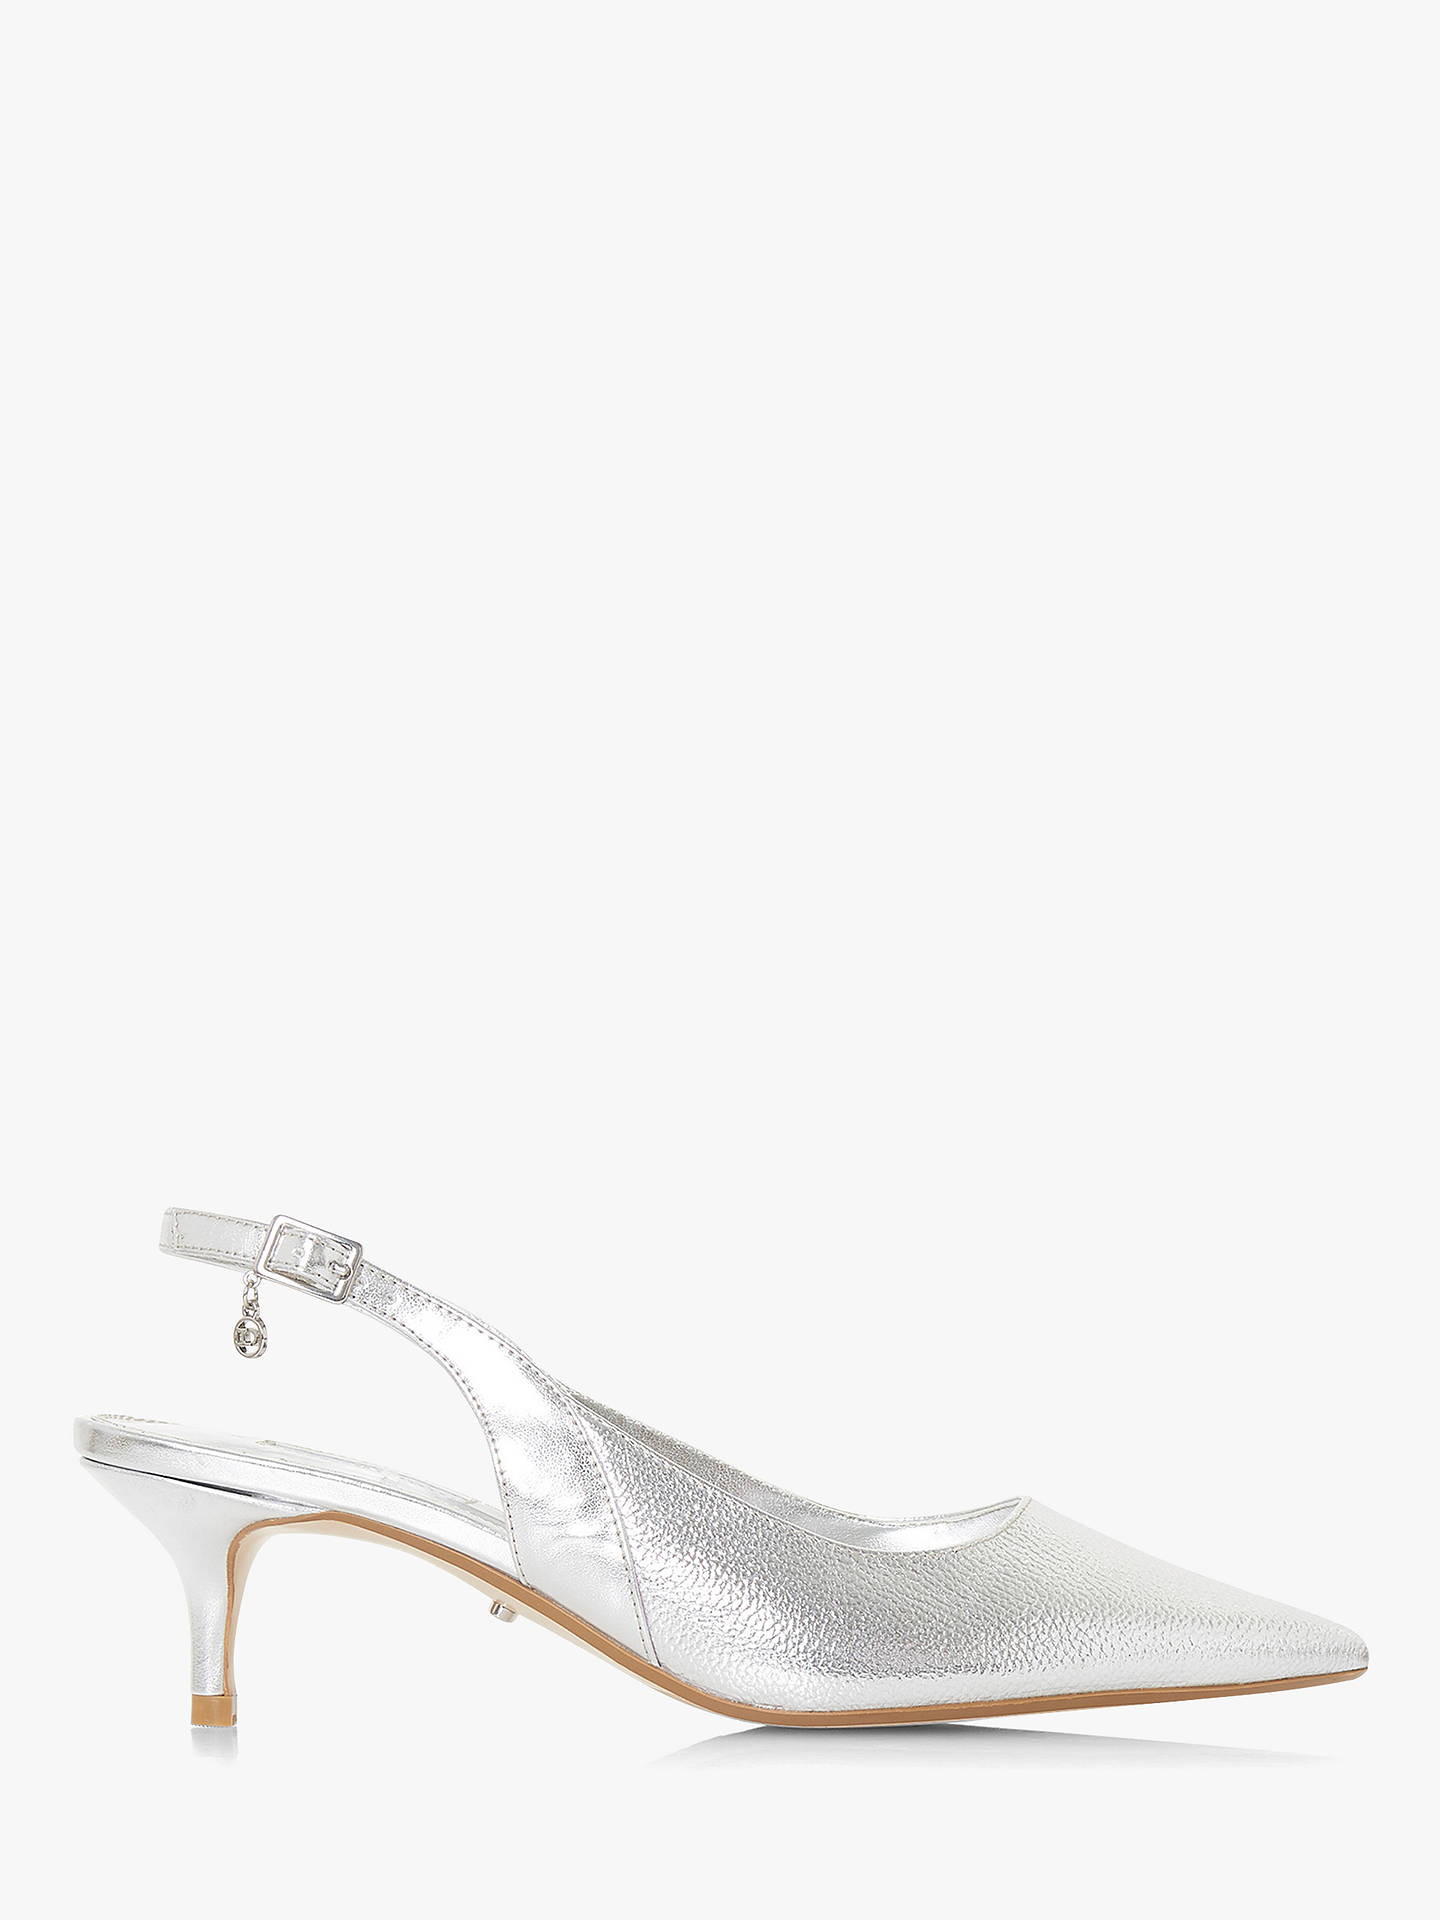 c6fa70b4f09 Dune Cinda Kitten Heel Slingback Court Shoes at John Lewis & Partners